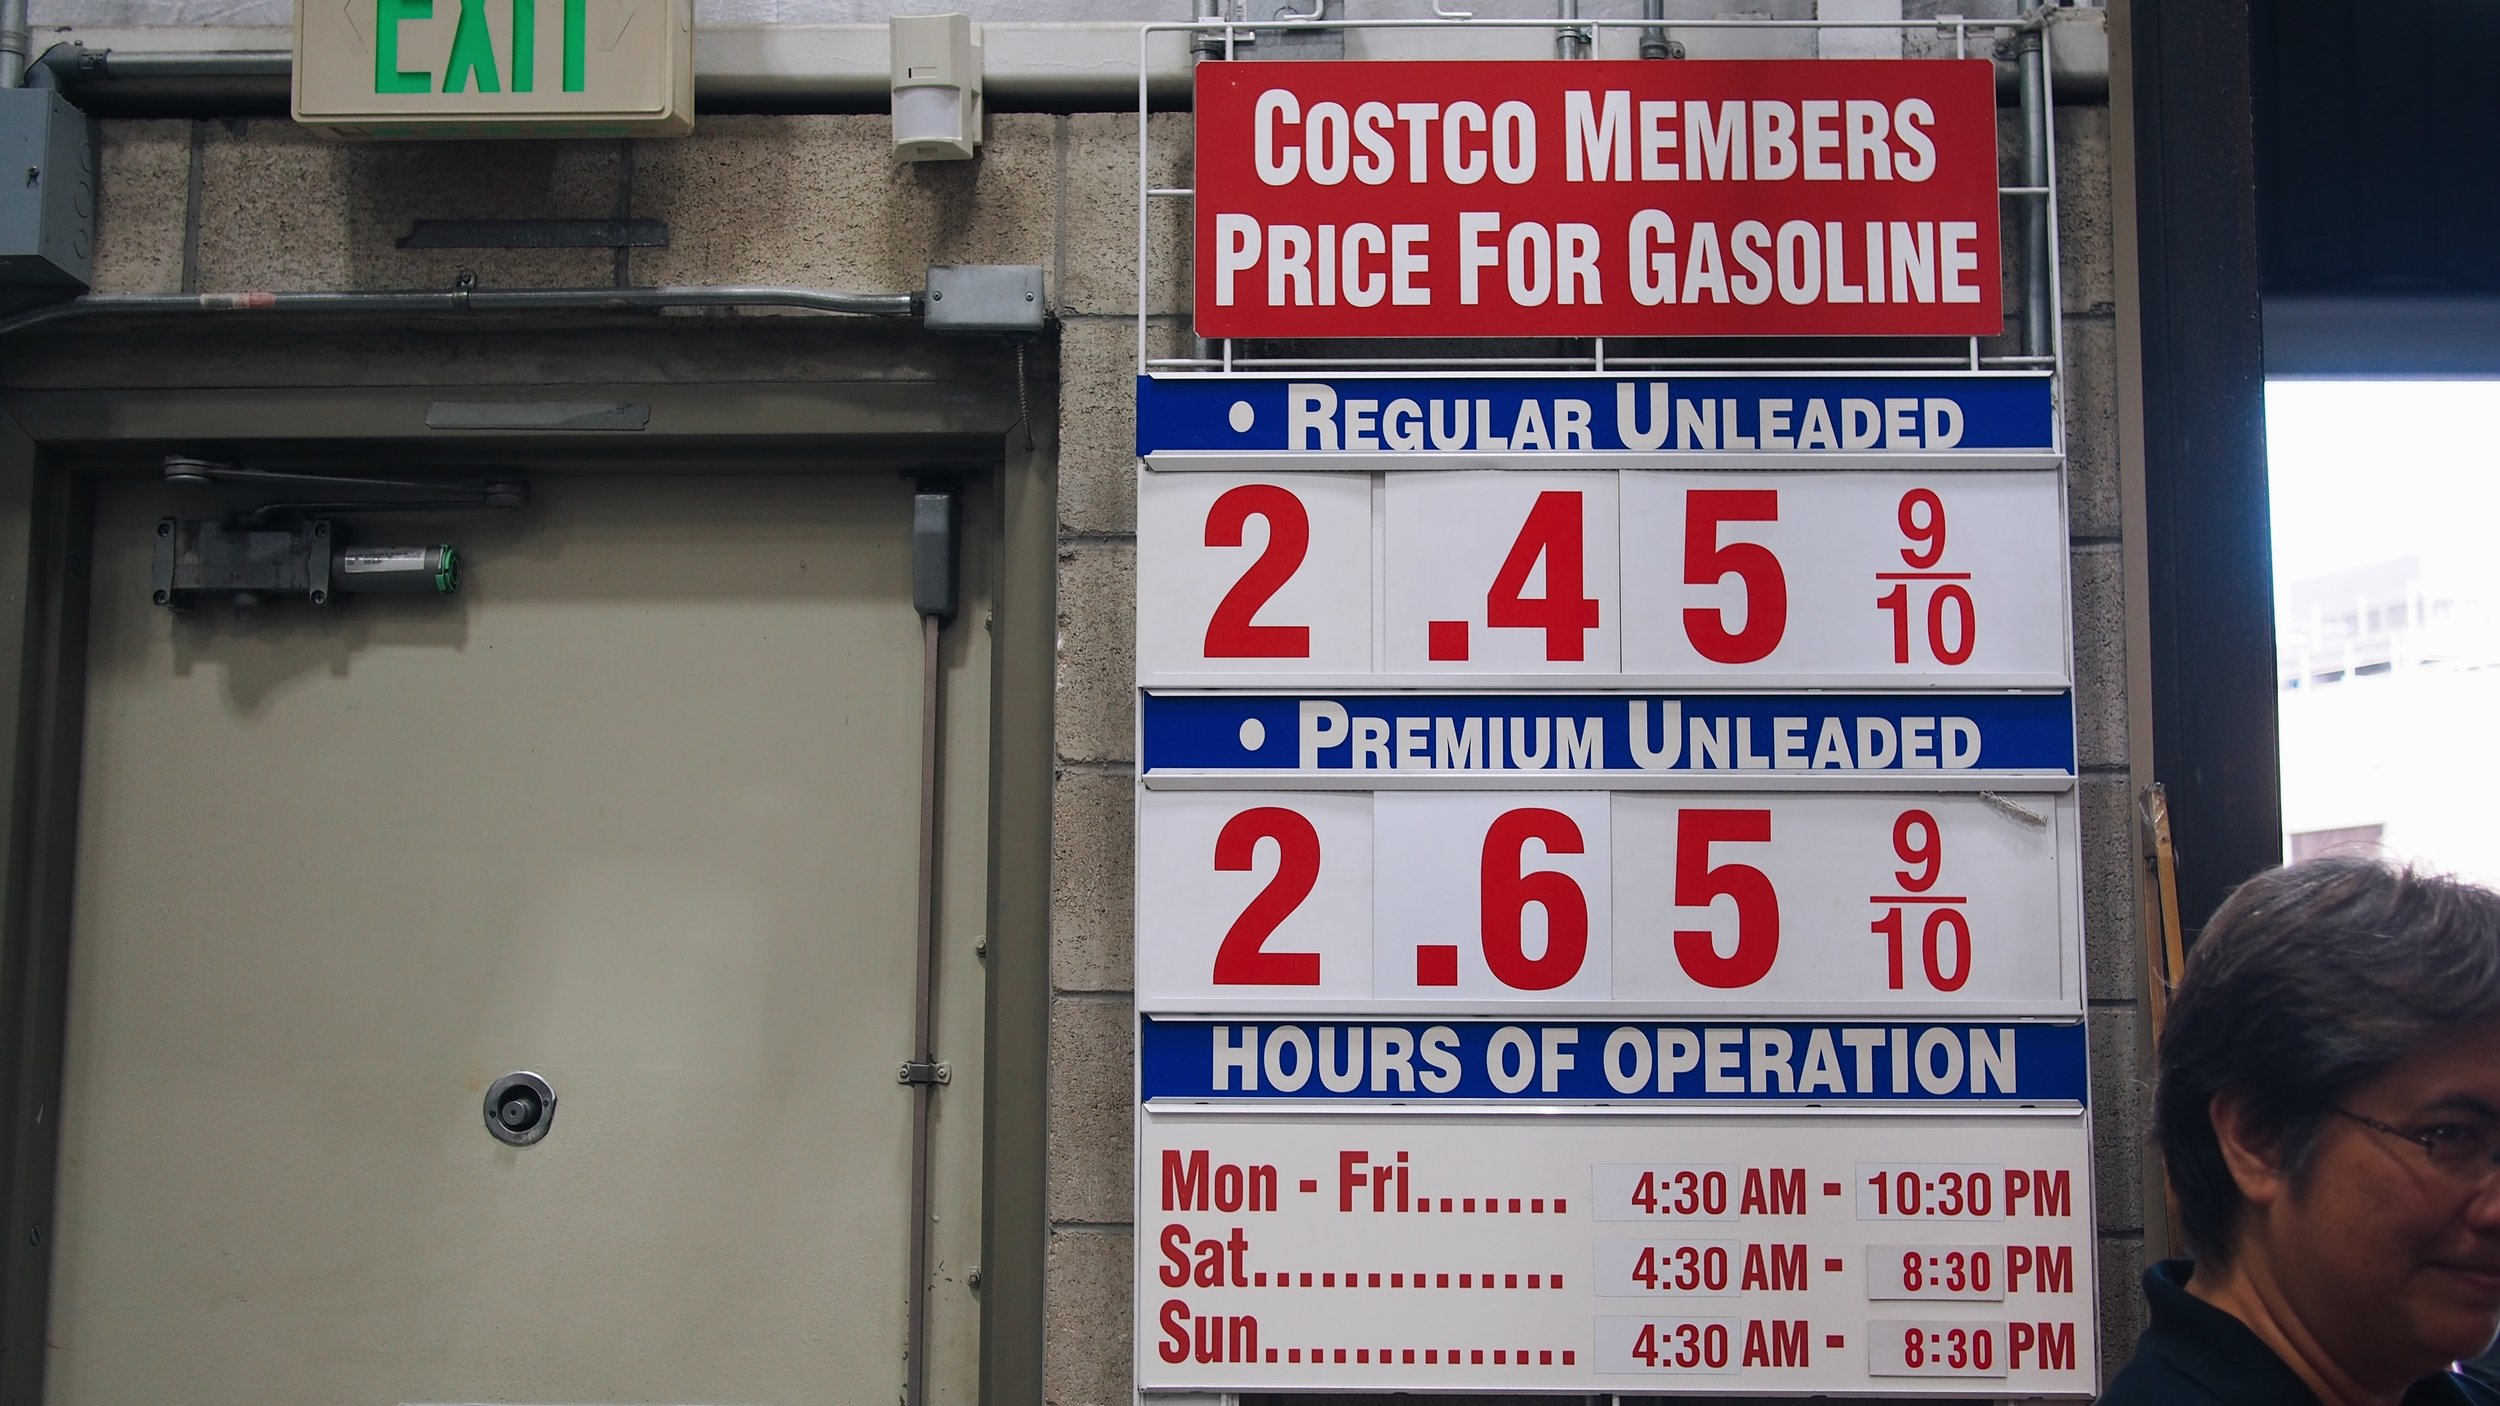 costco hawaii's gas prices